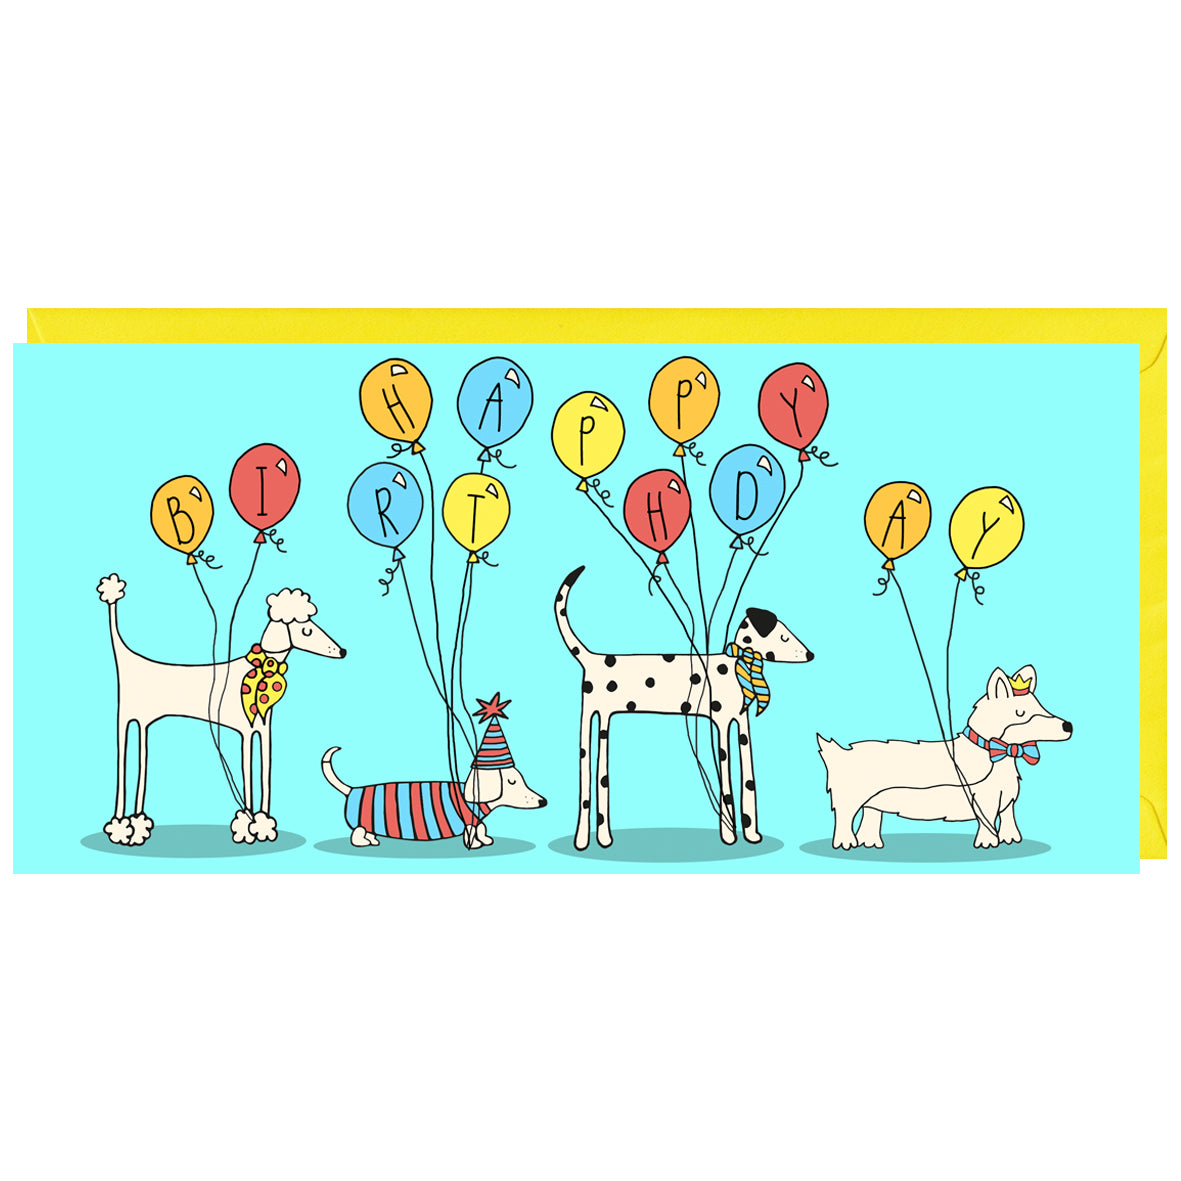 A fun birthday card featuring a row of dogs and balloons